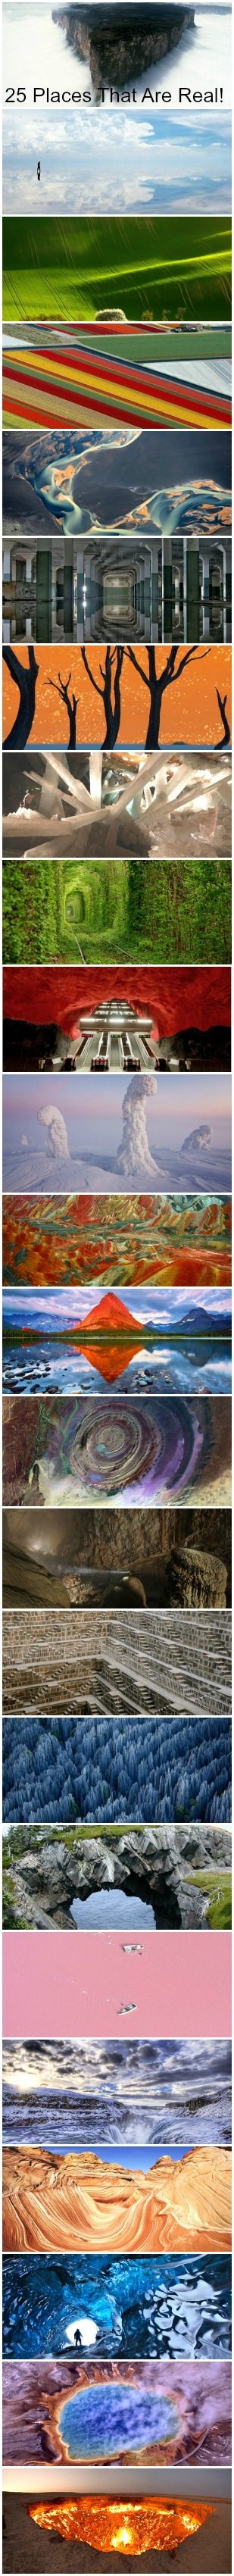 25 Places That Look Fake, But Are Real! Via Buzzfeed.com